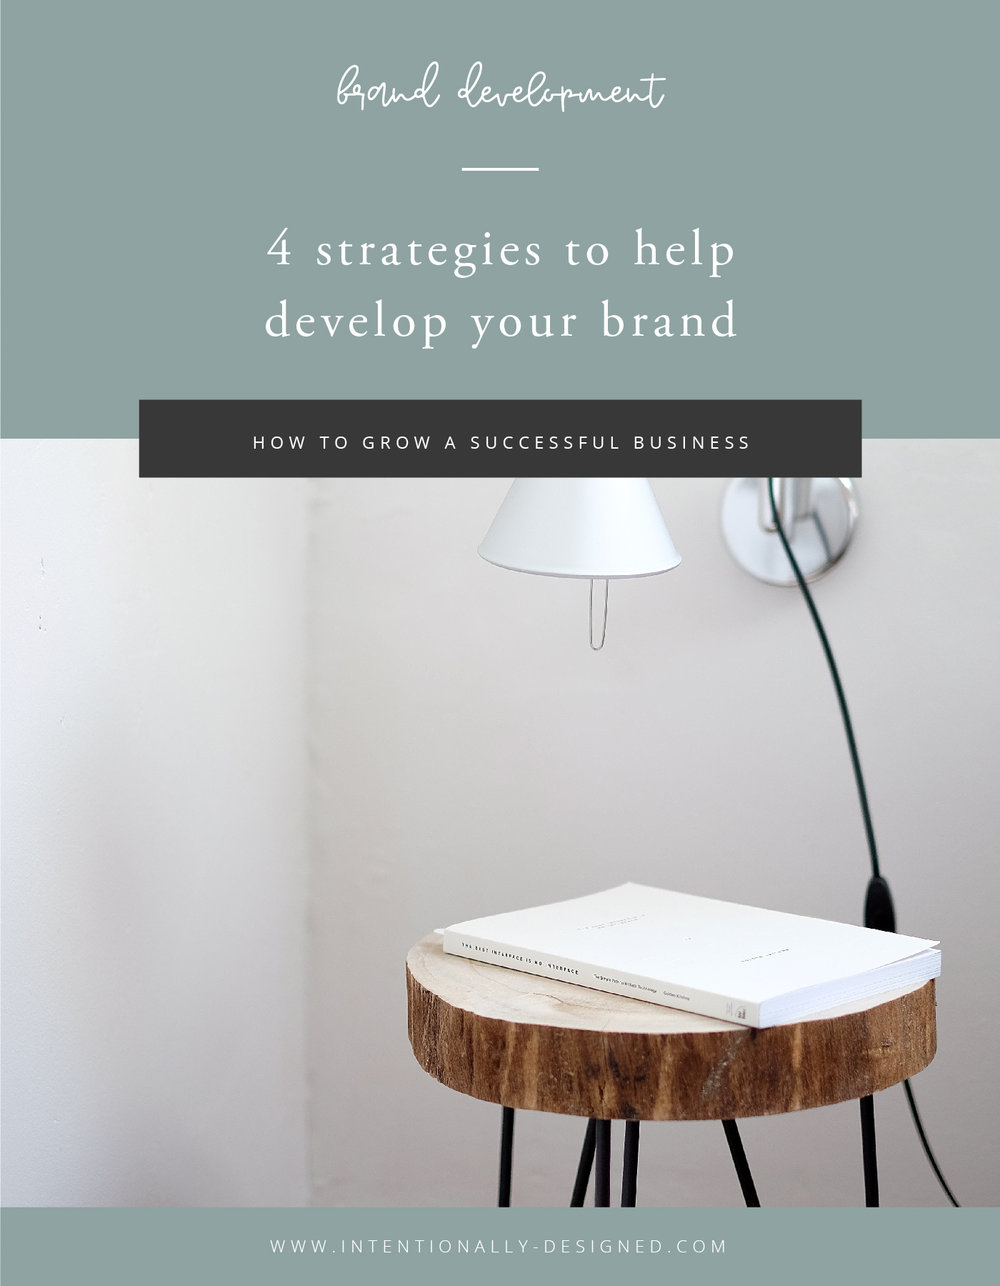 4 strategies to develop brand